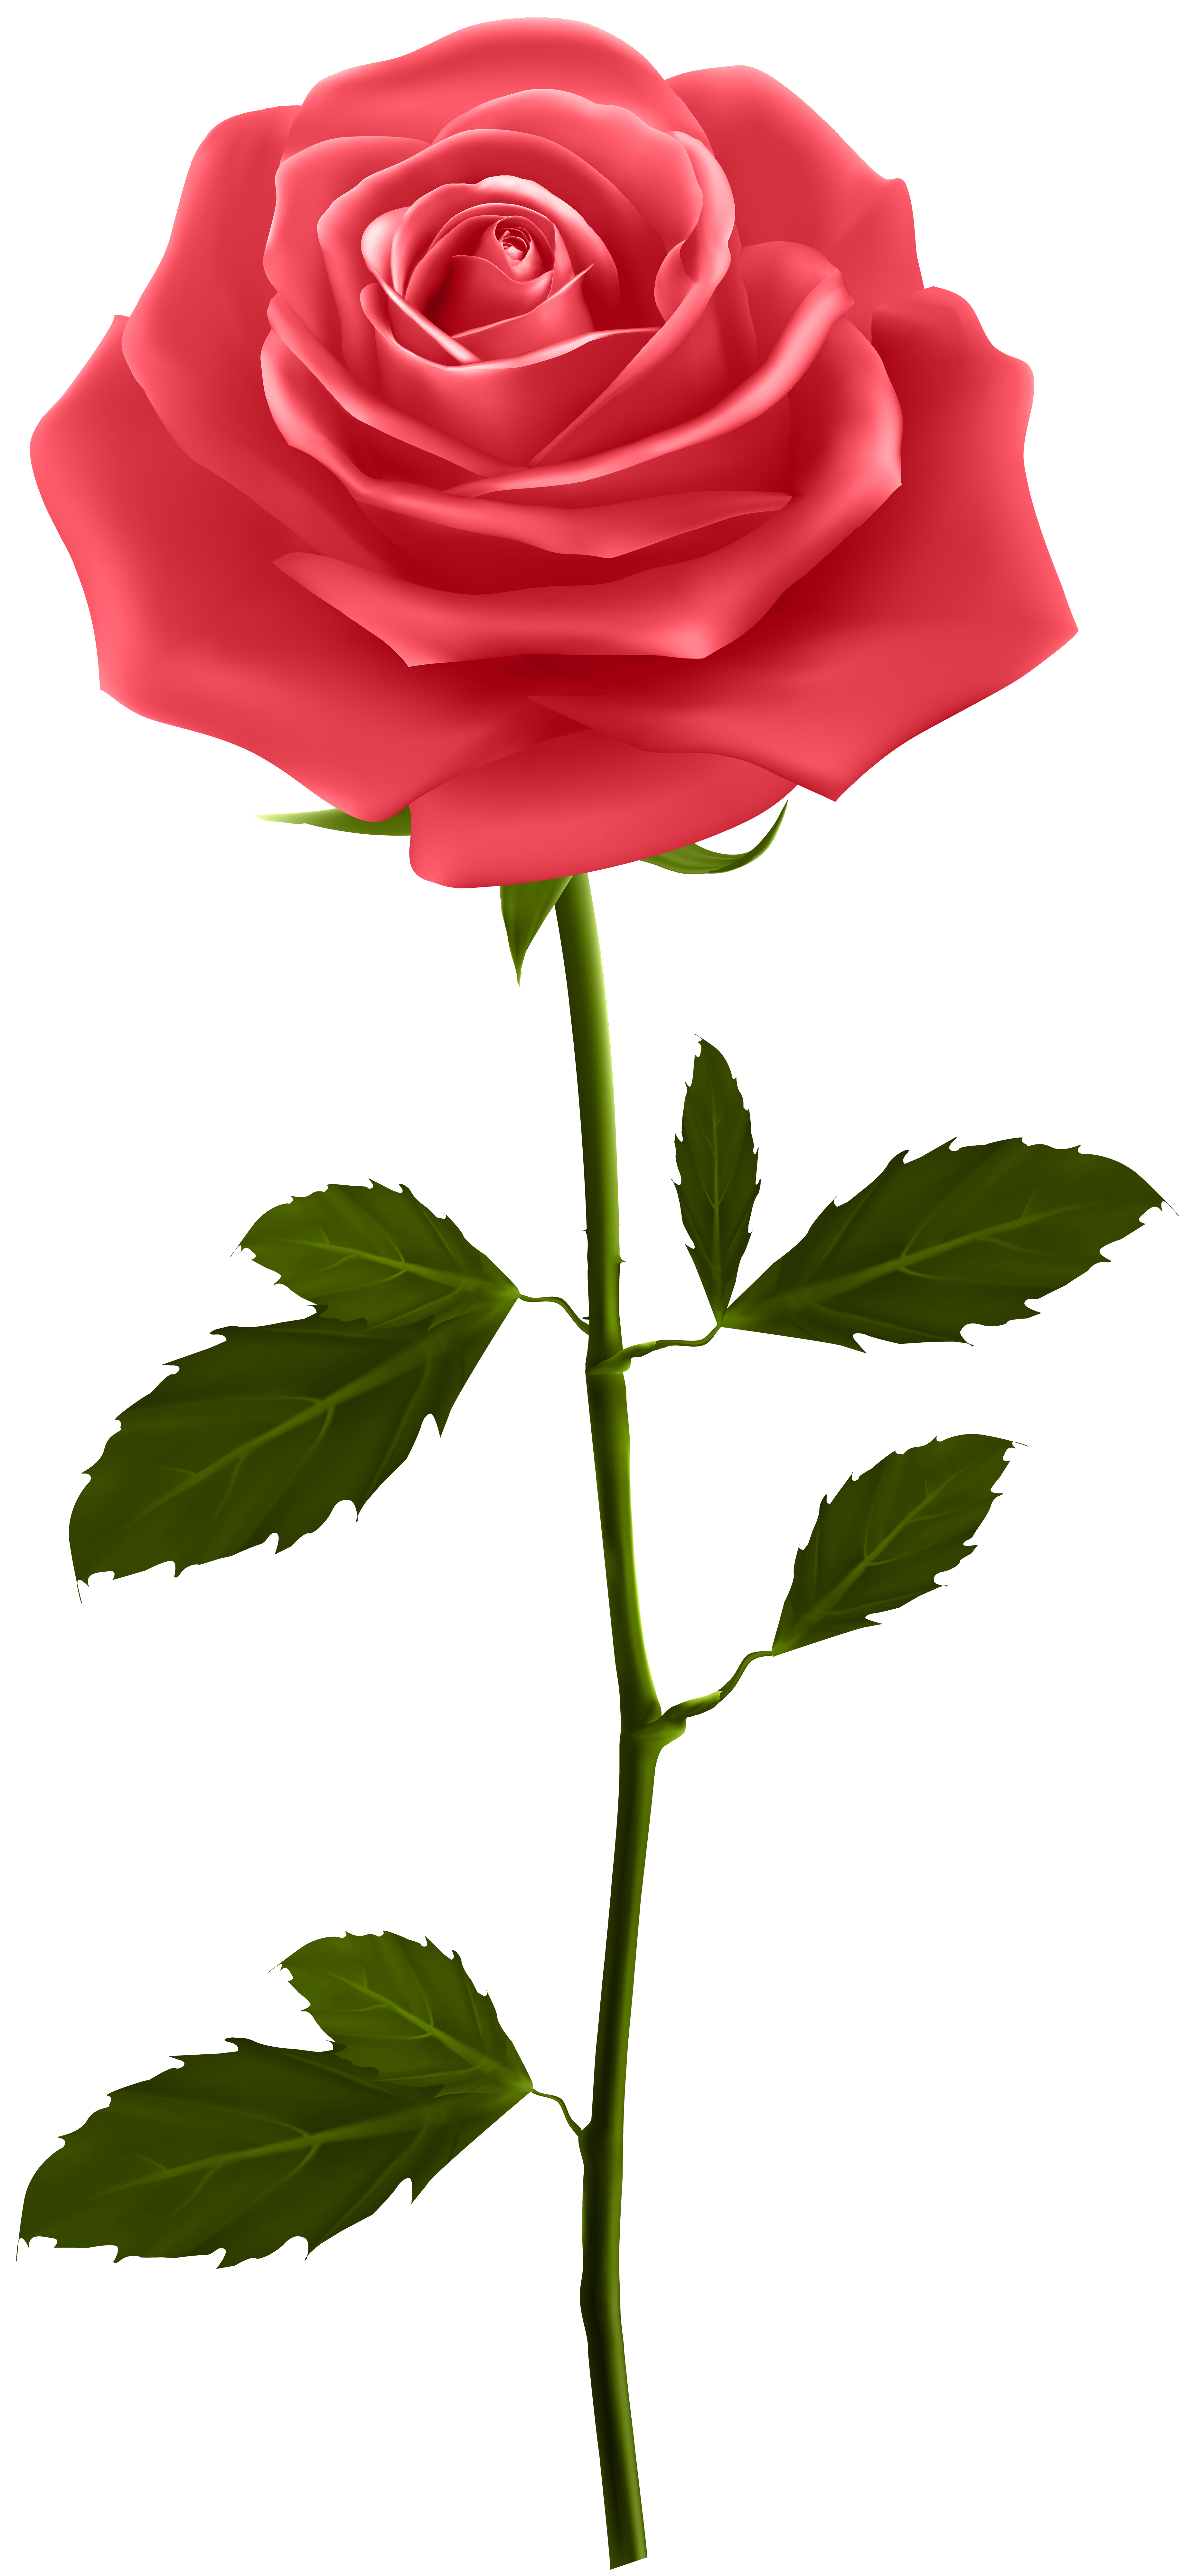 3706x8000 Red Rose With Stem Png Clip Artu200b Gallery Yopriceville